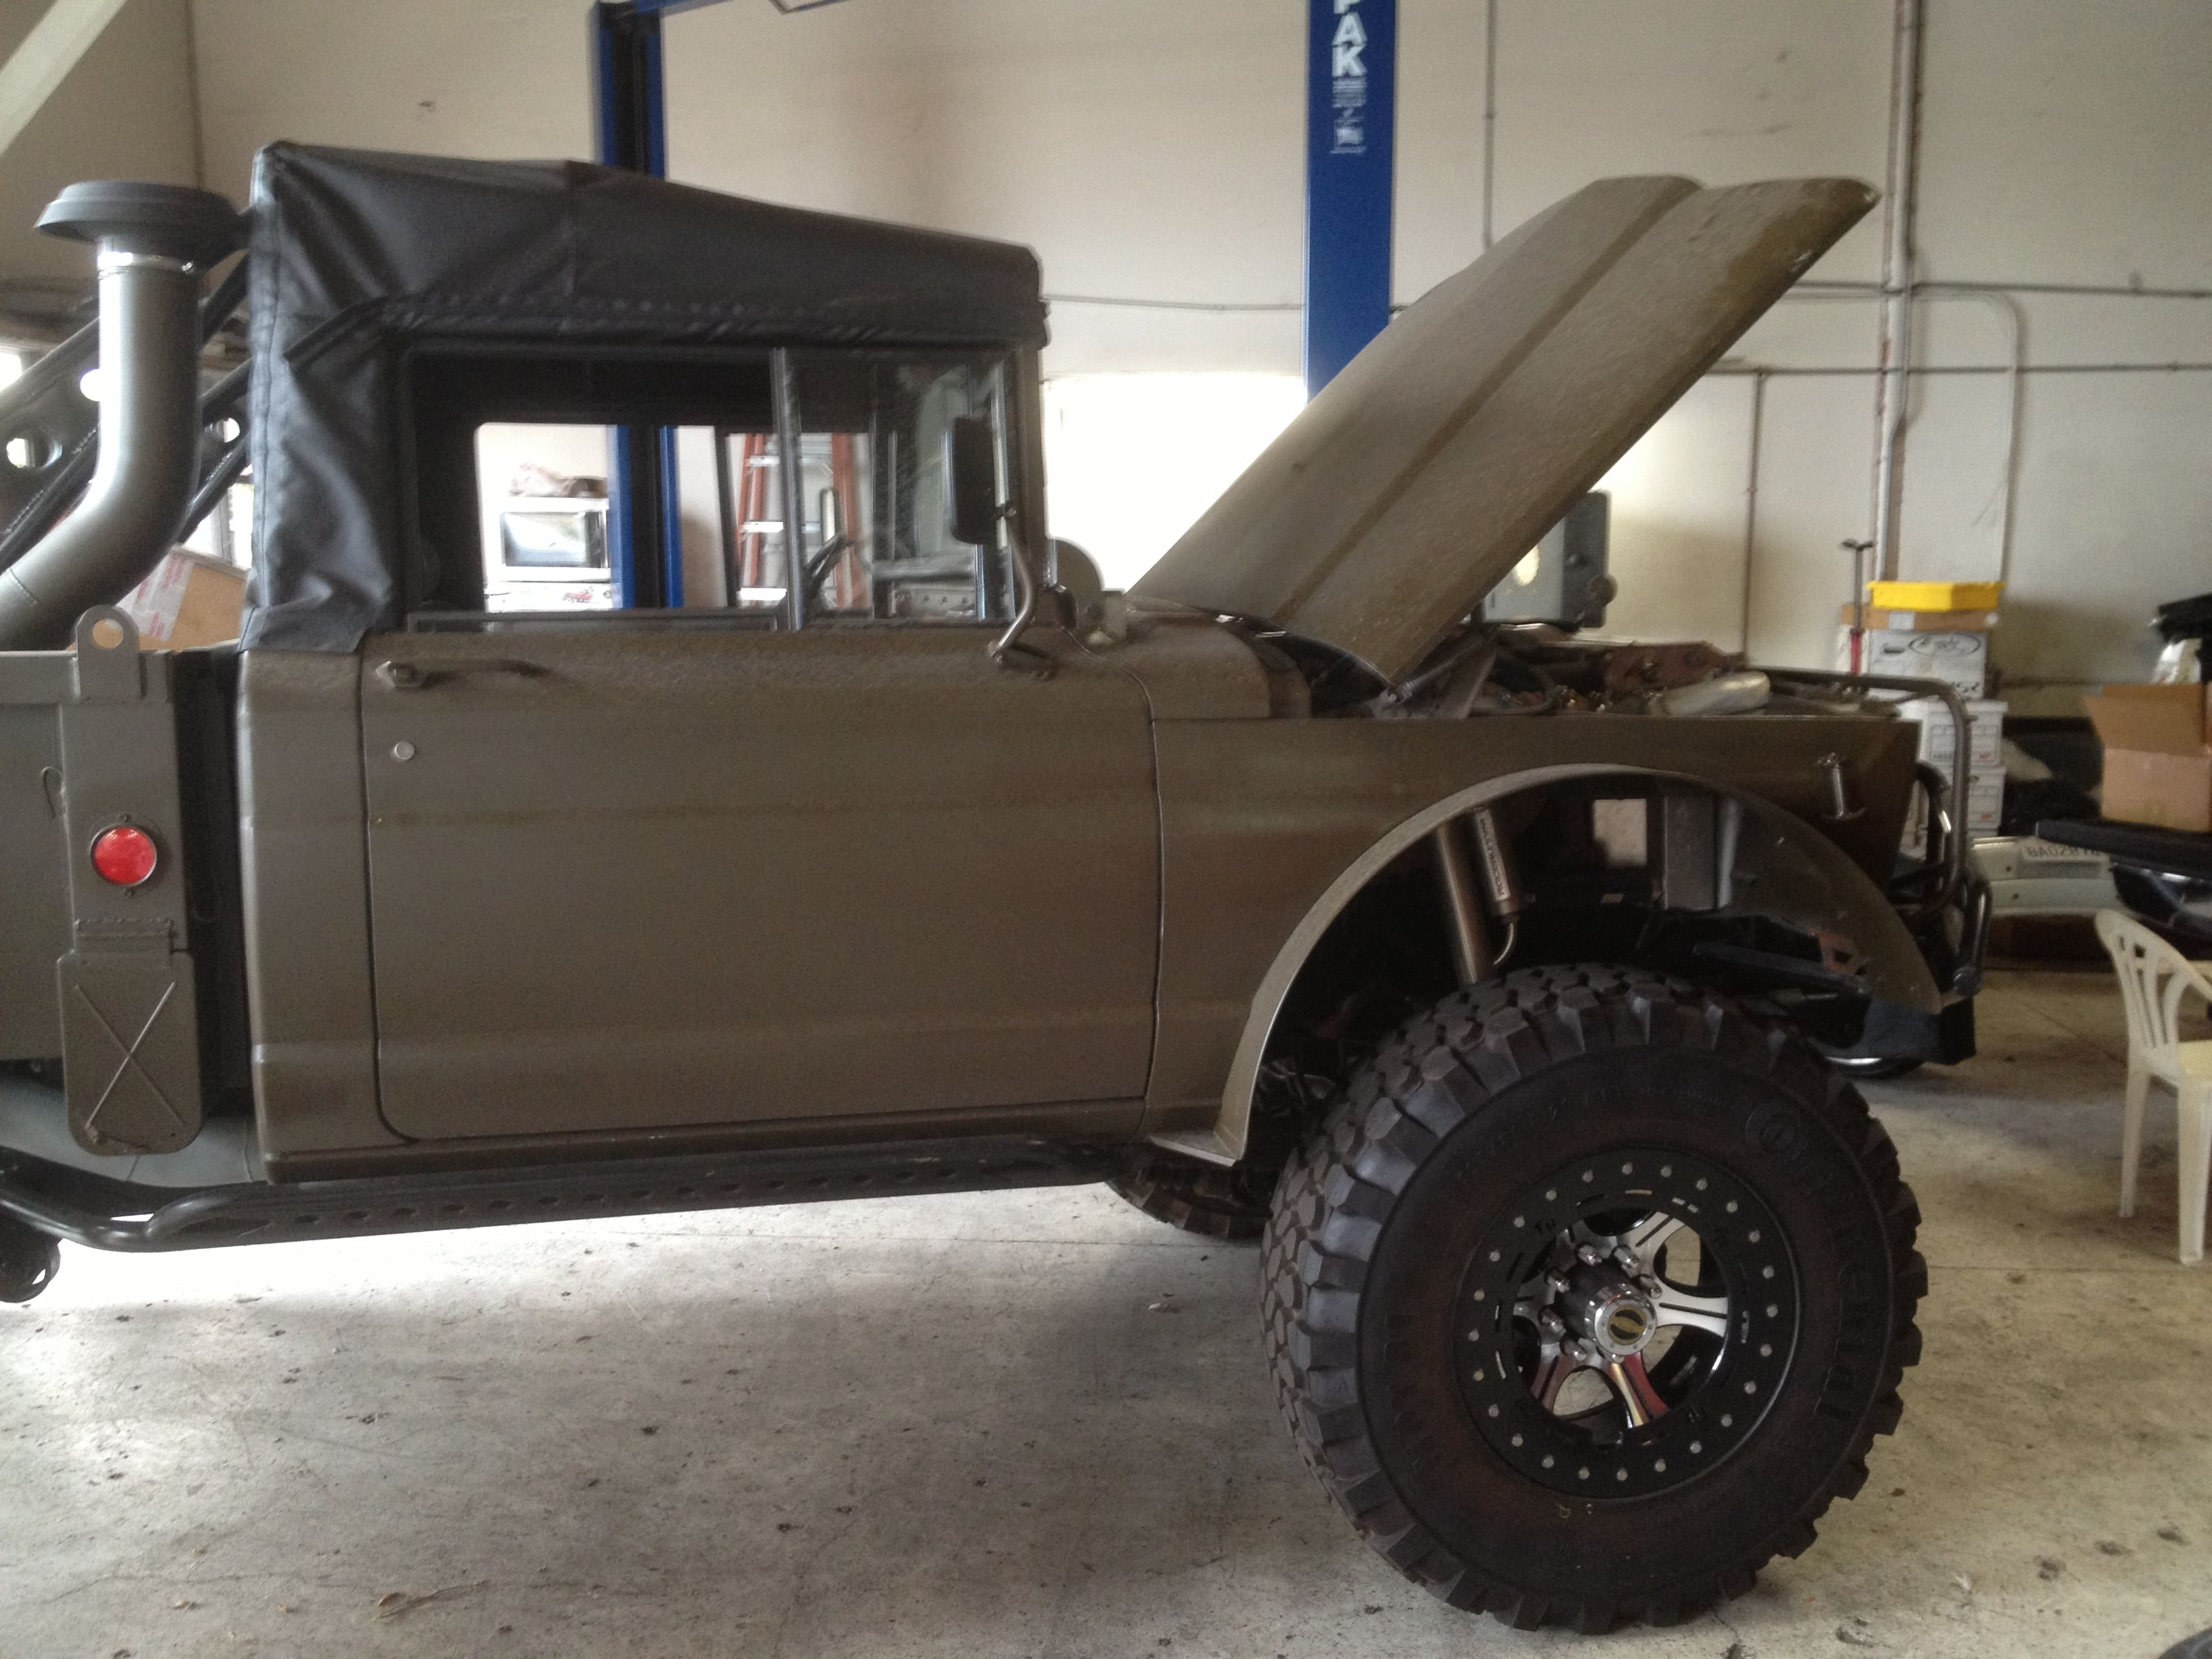 A really cool new project on a 1967 kaiser jeep m715 military surplus this